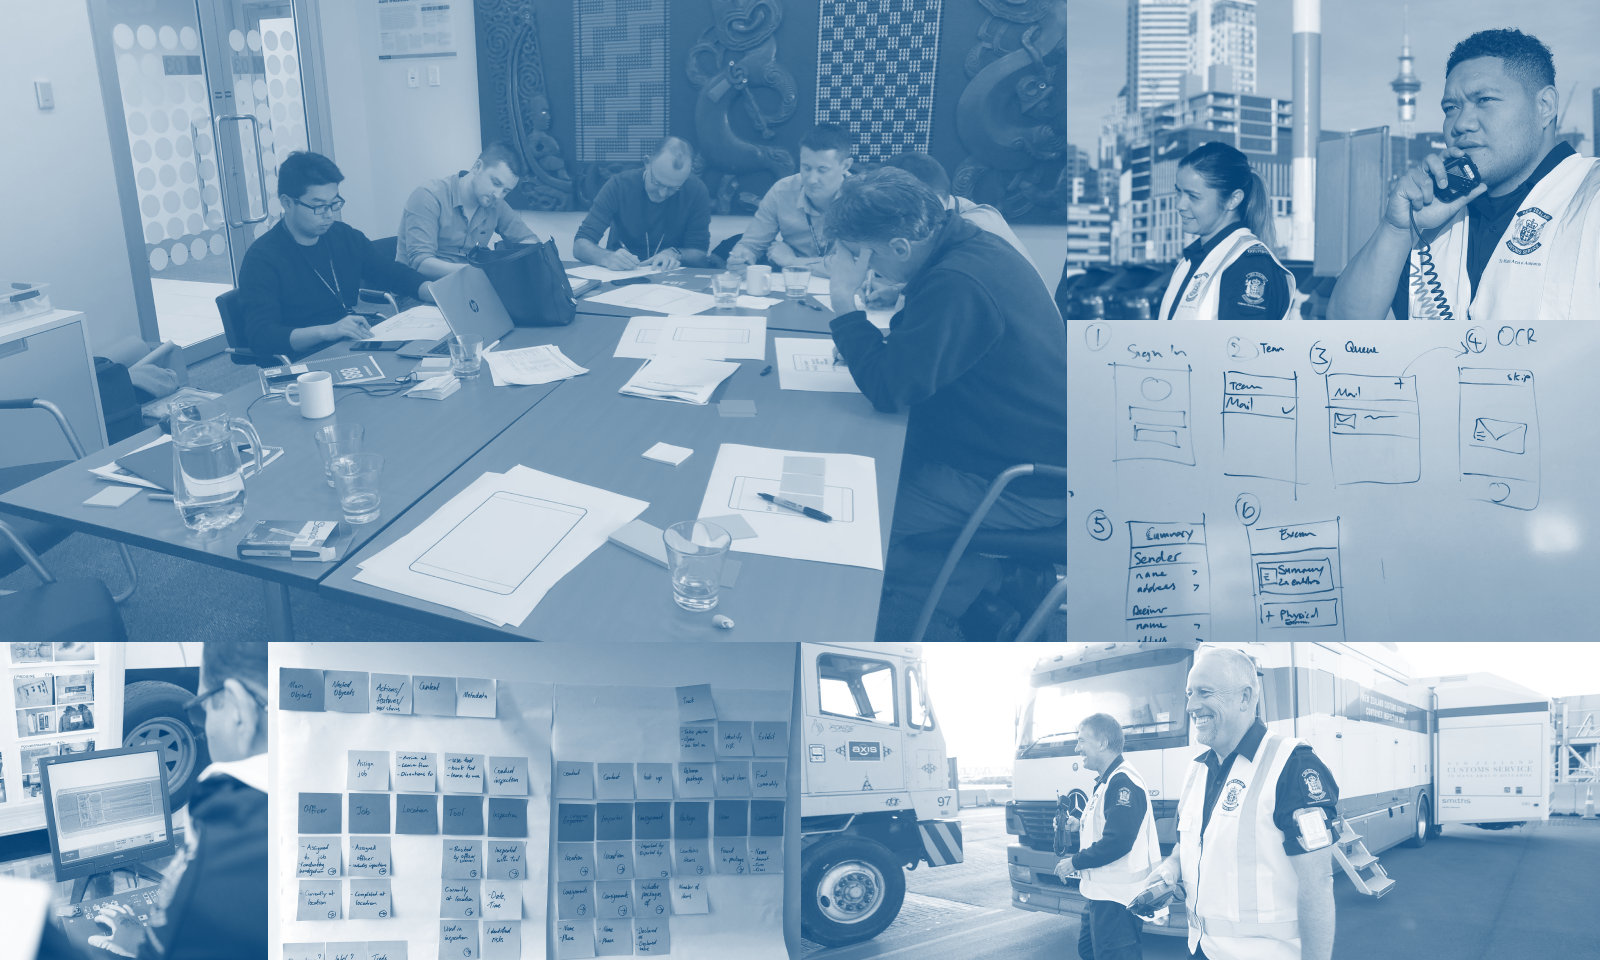 Photo collage of the design process including workshops and sketches